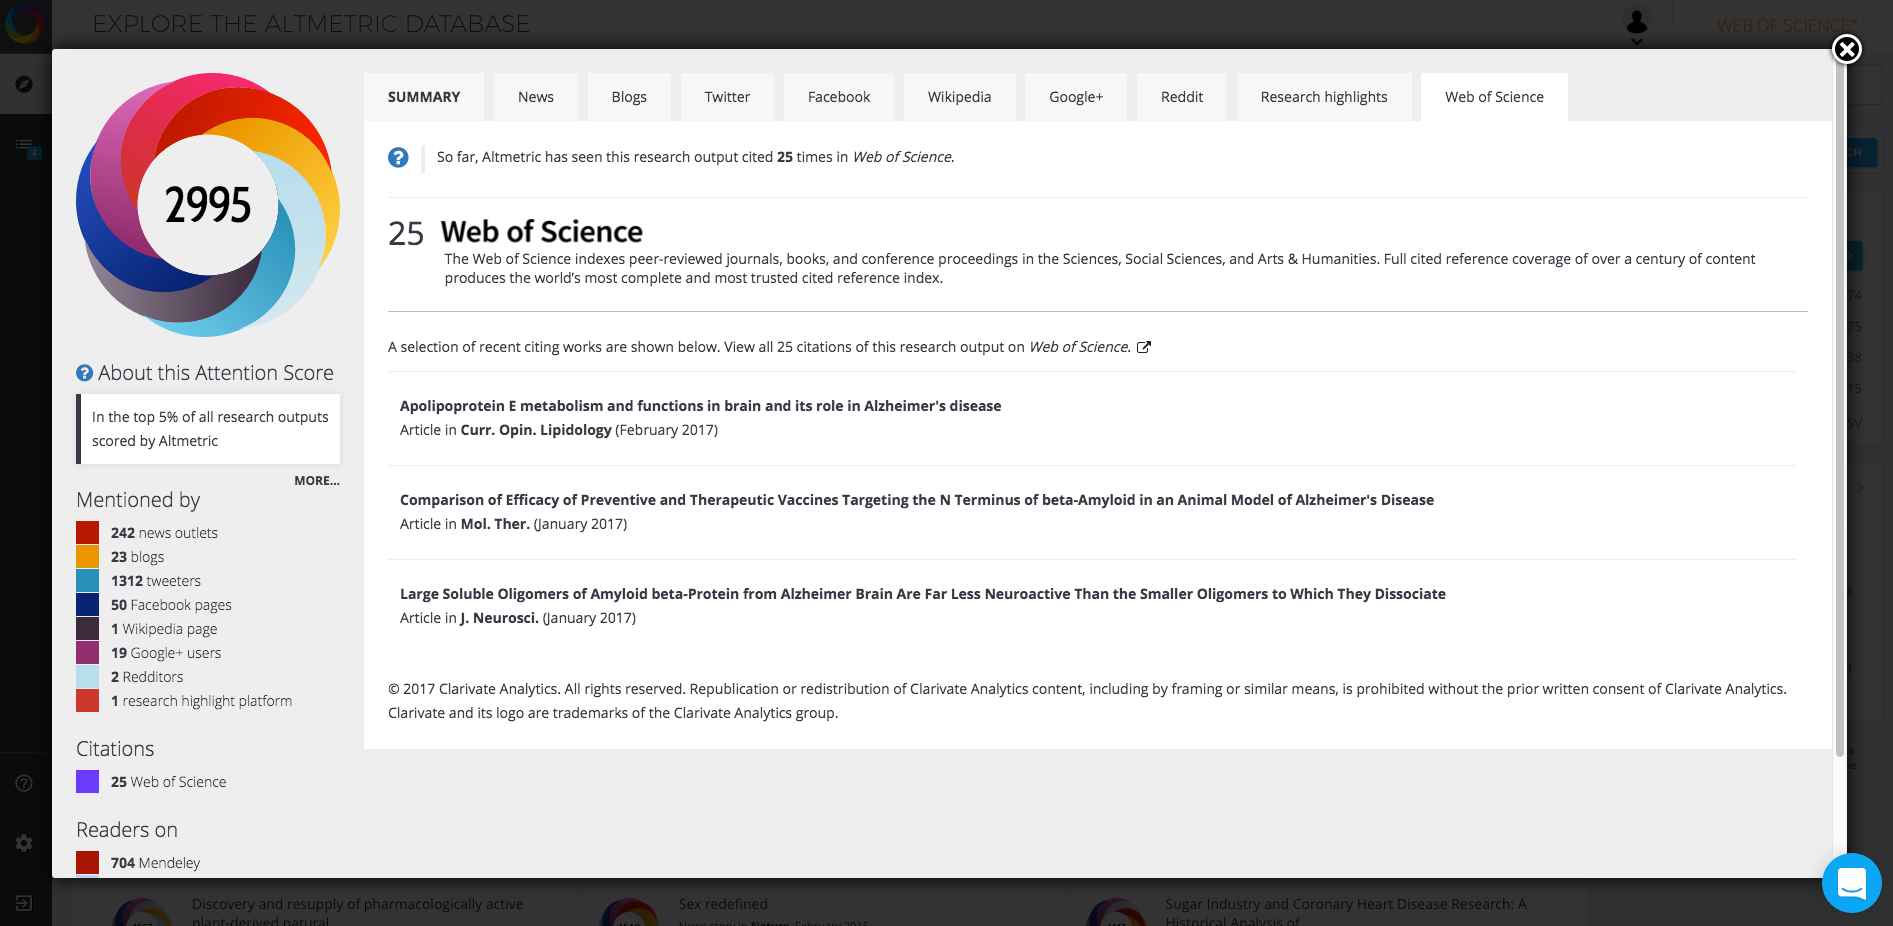 Web of Science - Press Release Screenshot